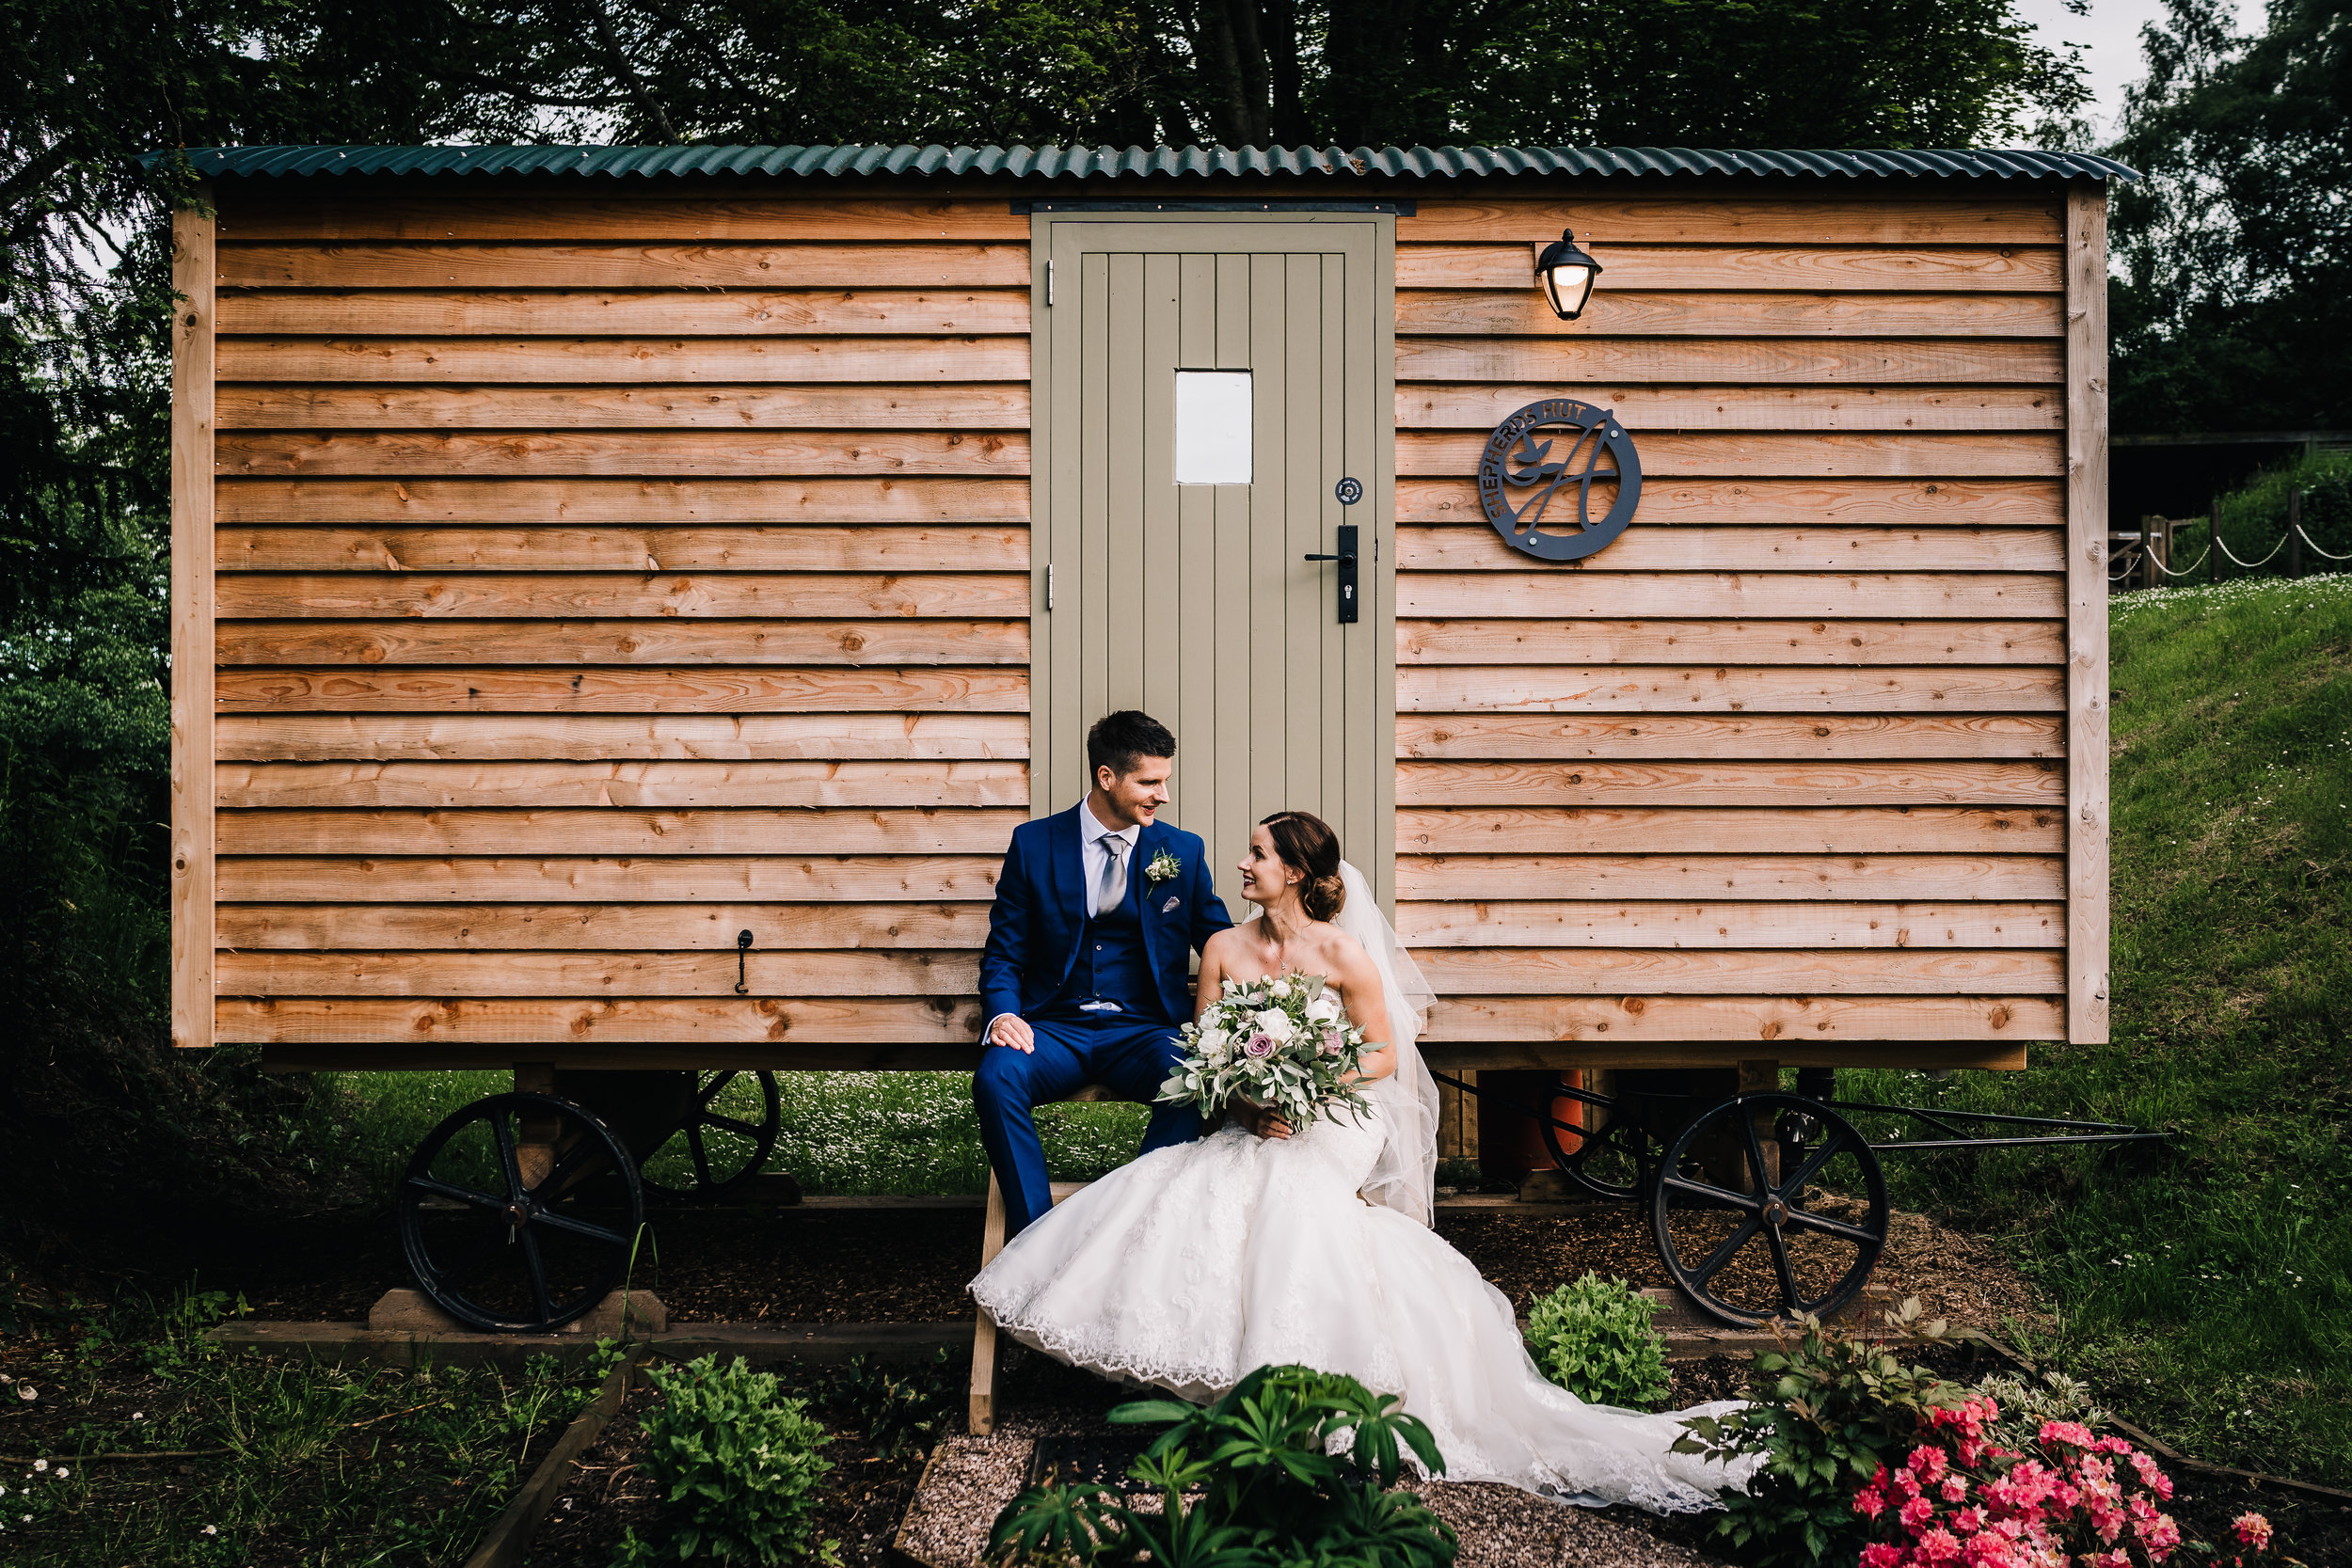 BRIDE AND GROOM AT THE SHEPARDS HUT IN THE ASHES BARNS VENUE STAFFORDSHIRE